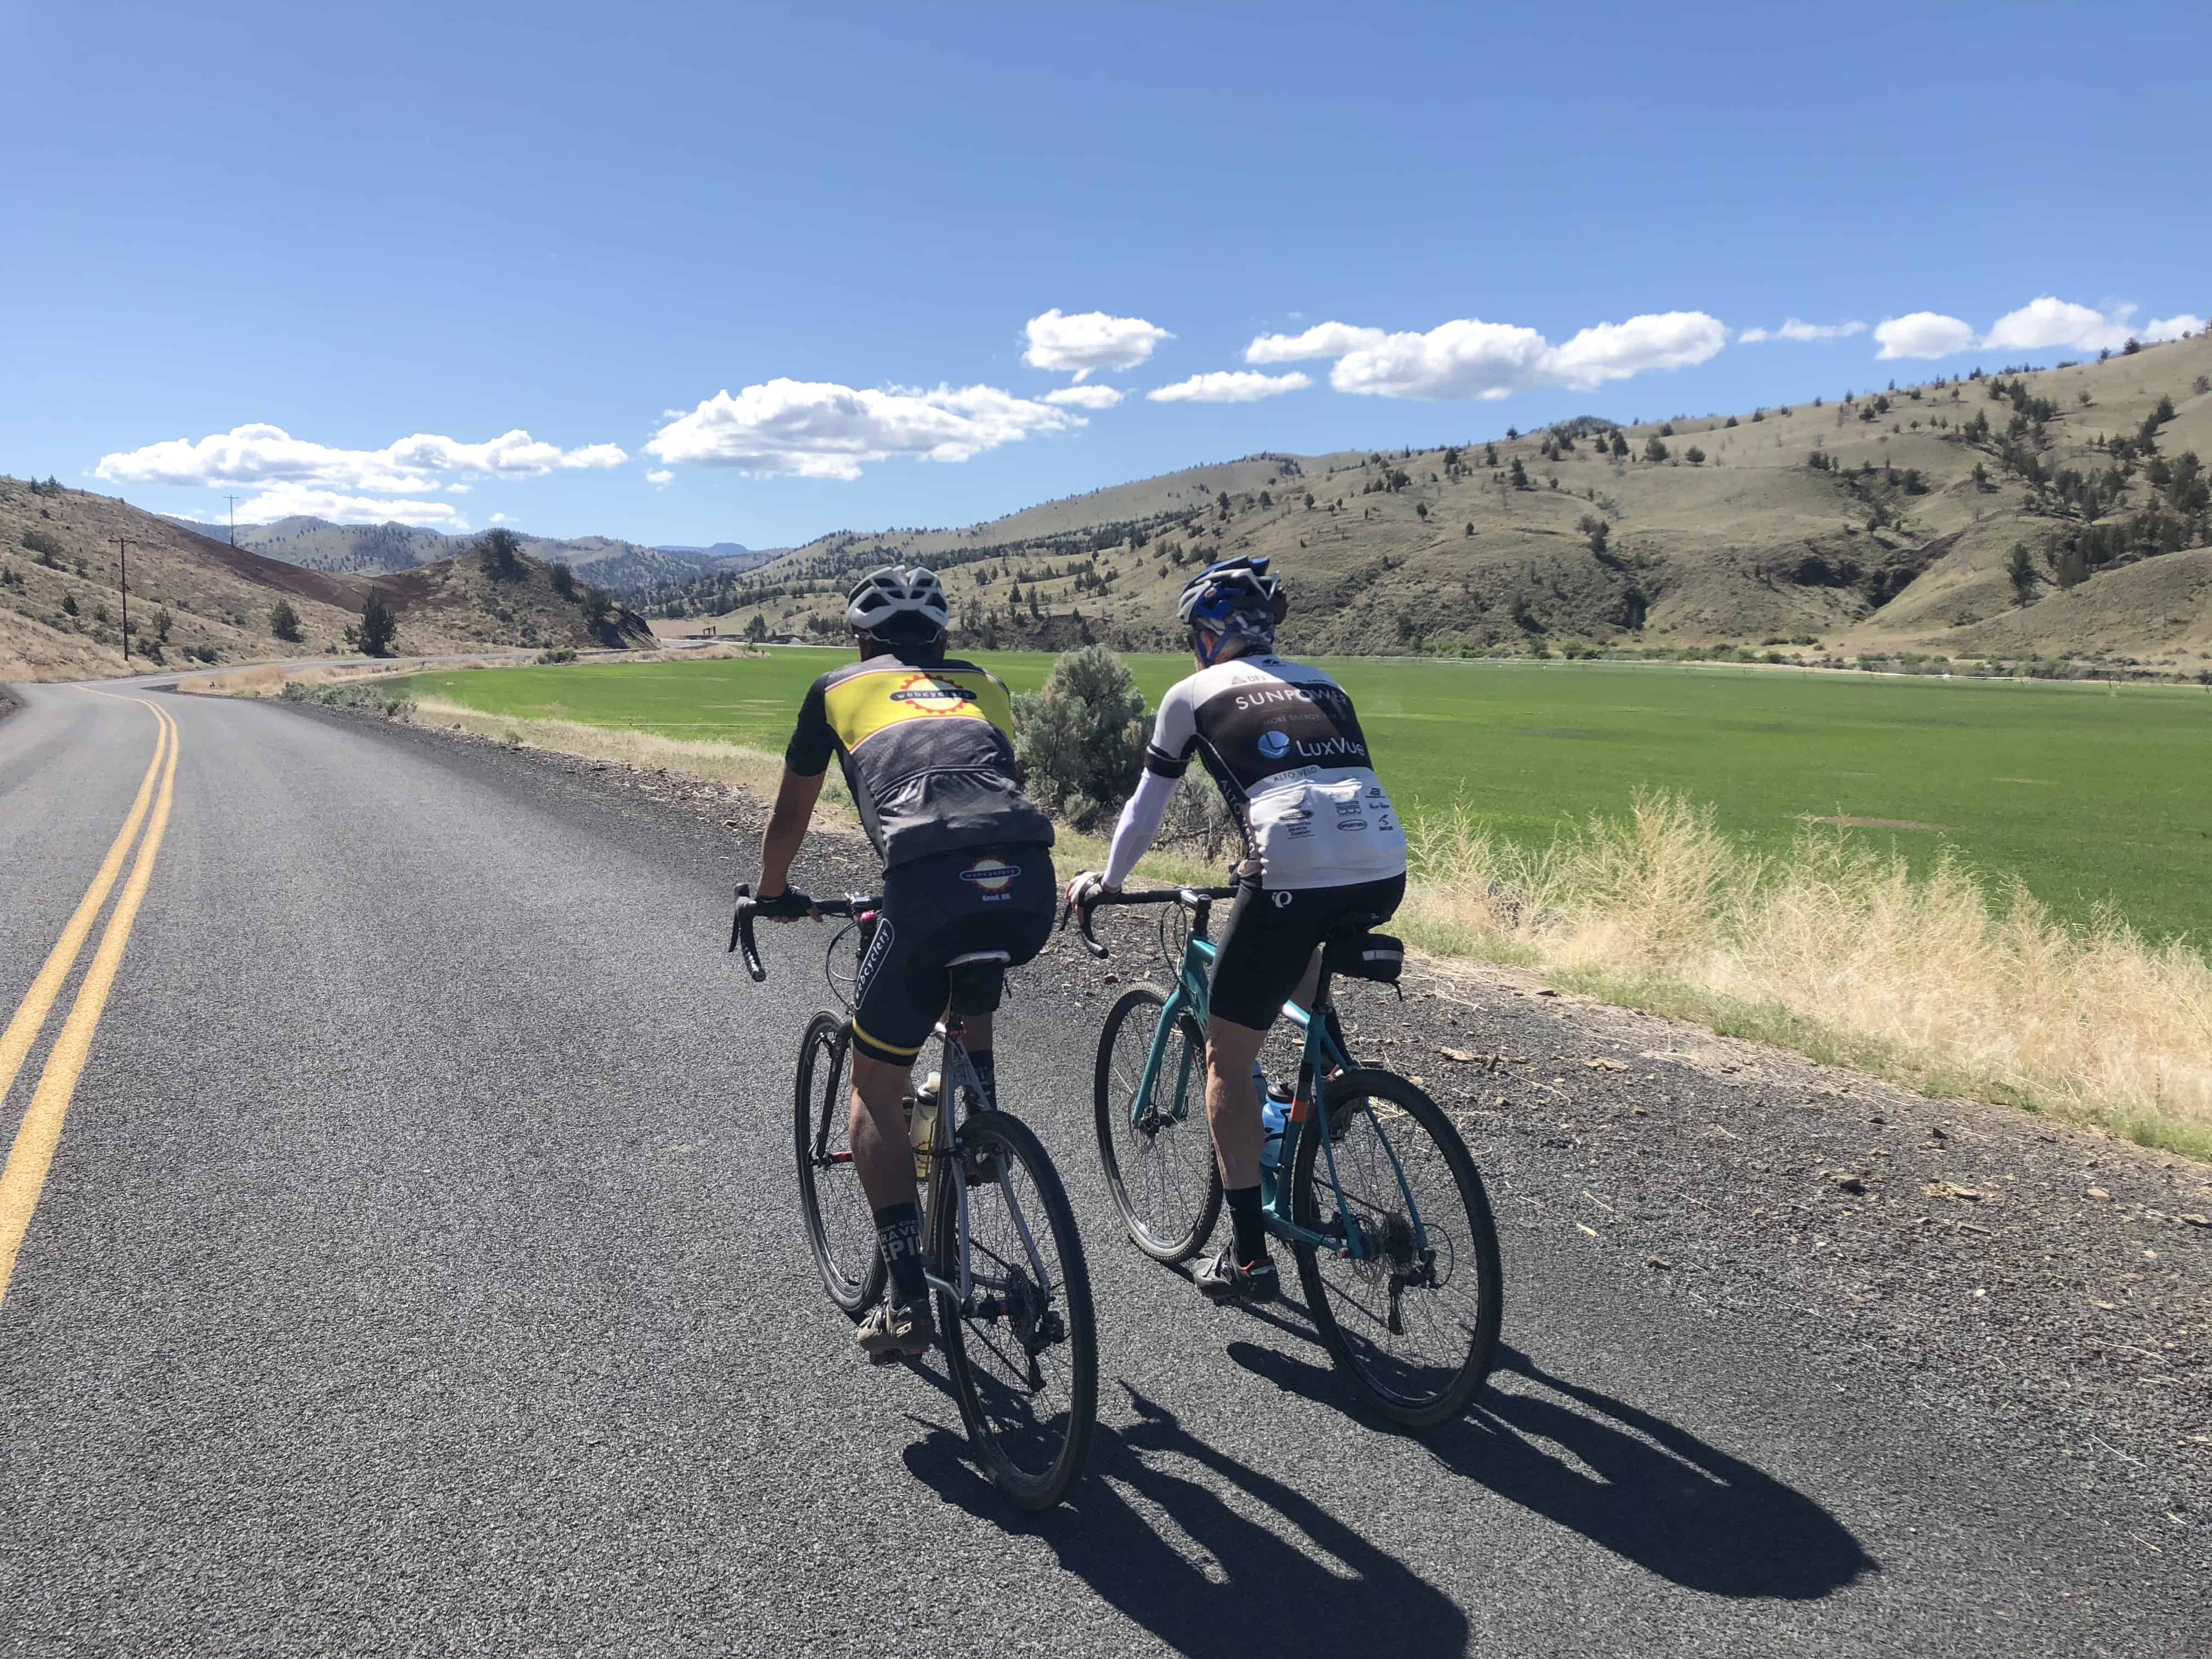 Two men cyclists on paved road near Mitchell.